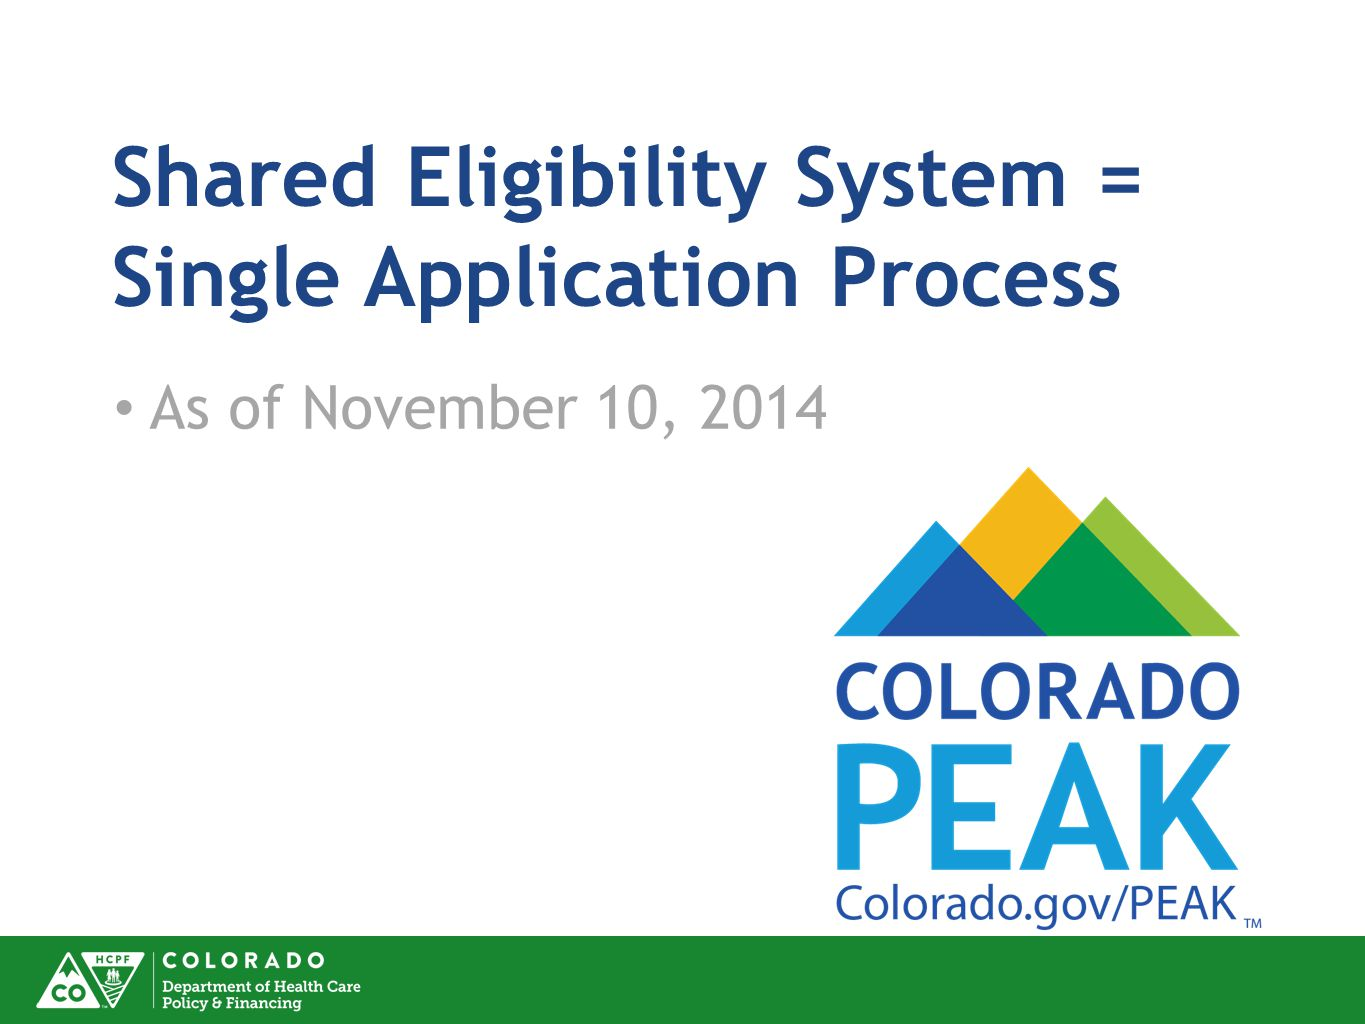 Shared Eligibility System = Single Application Process